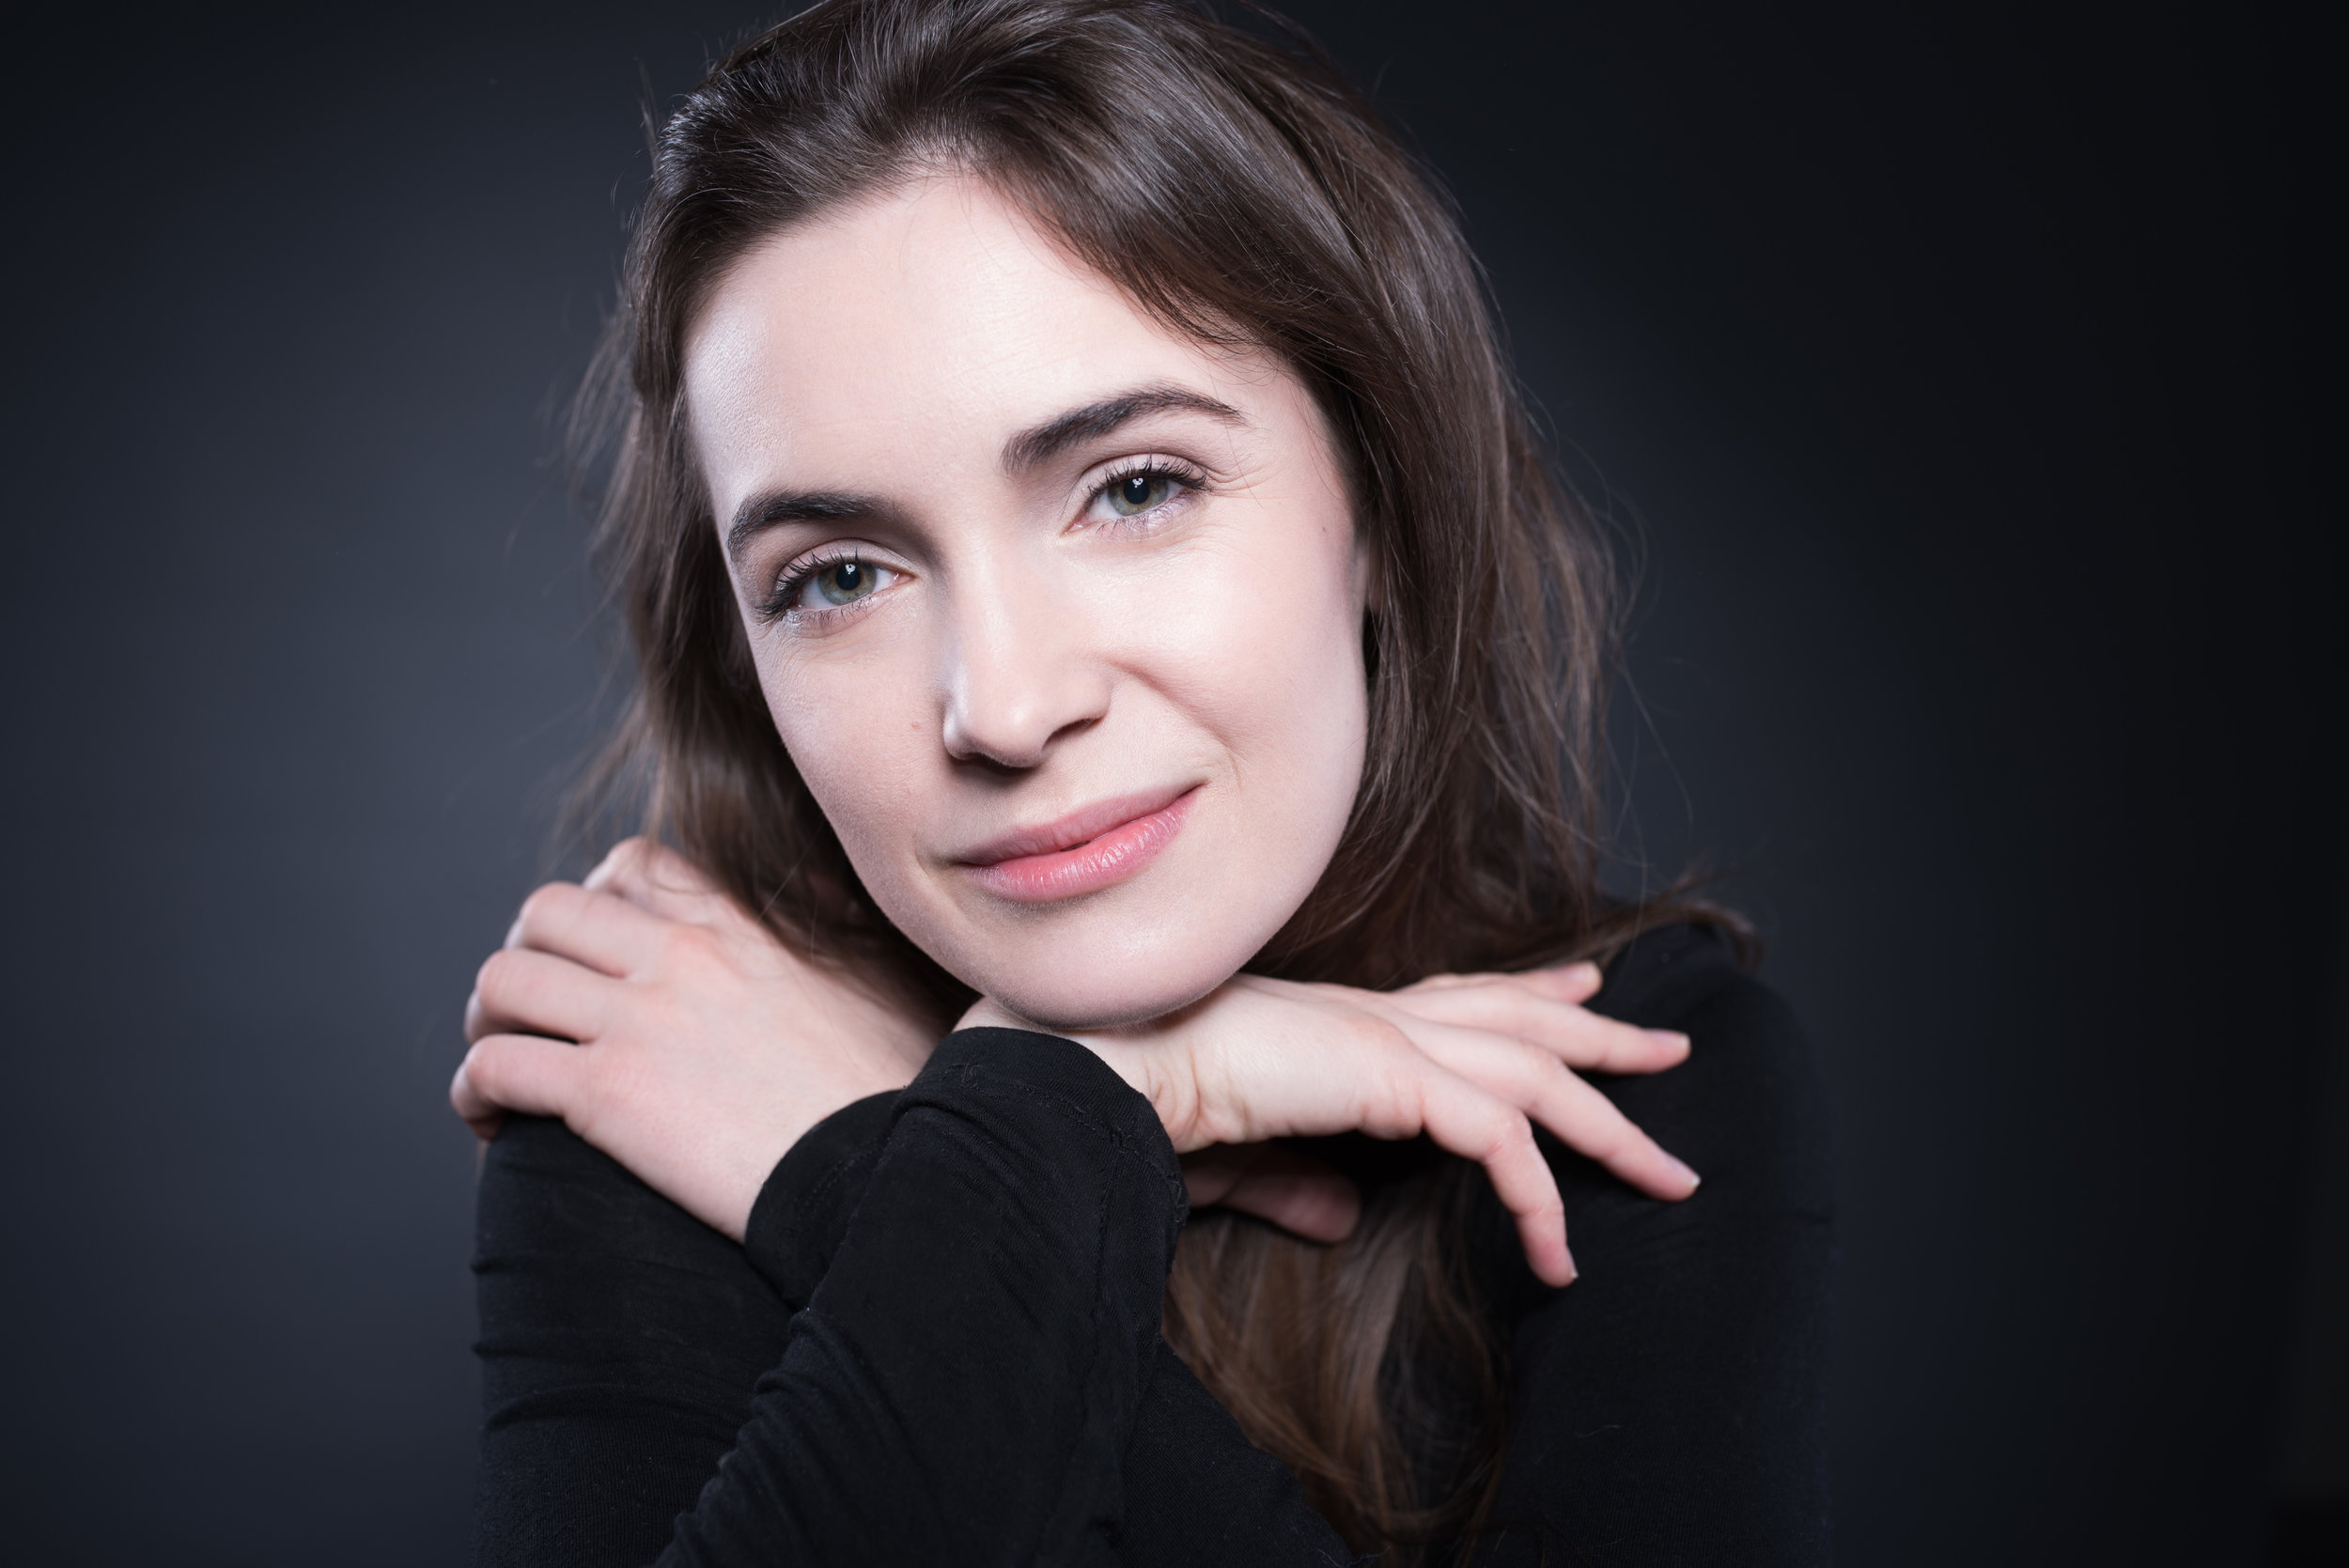 Professional headshot of aspiring actress Sarah Haváčová made by Tatiana Shalunova Headshots Prague.jpg